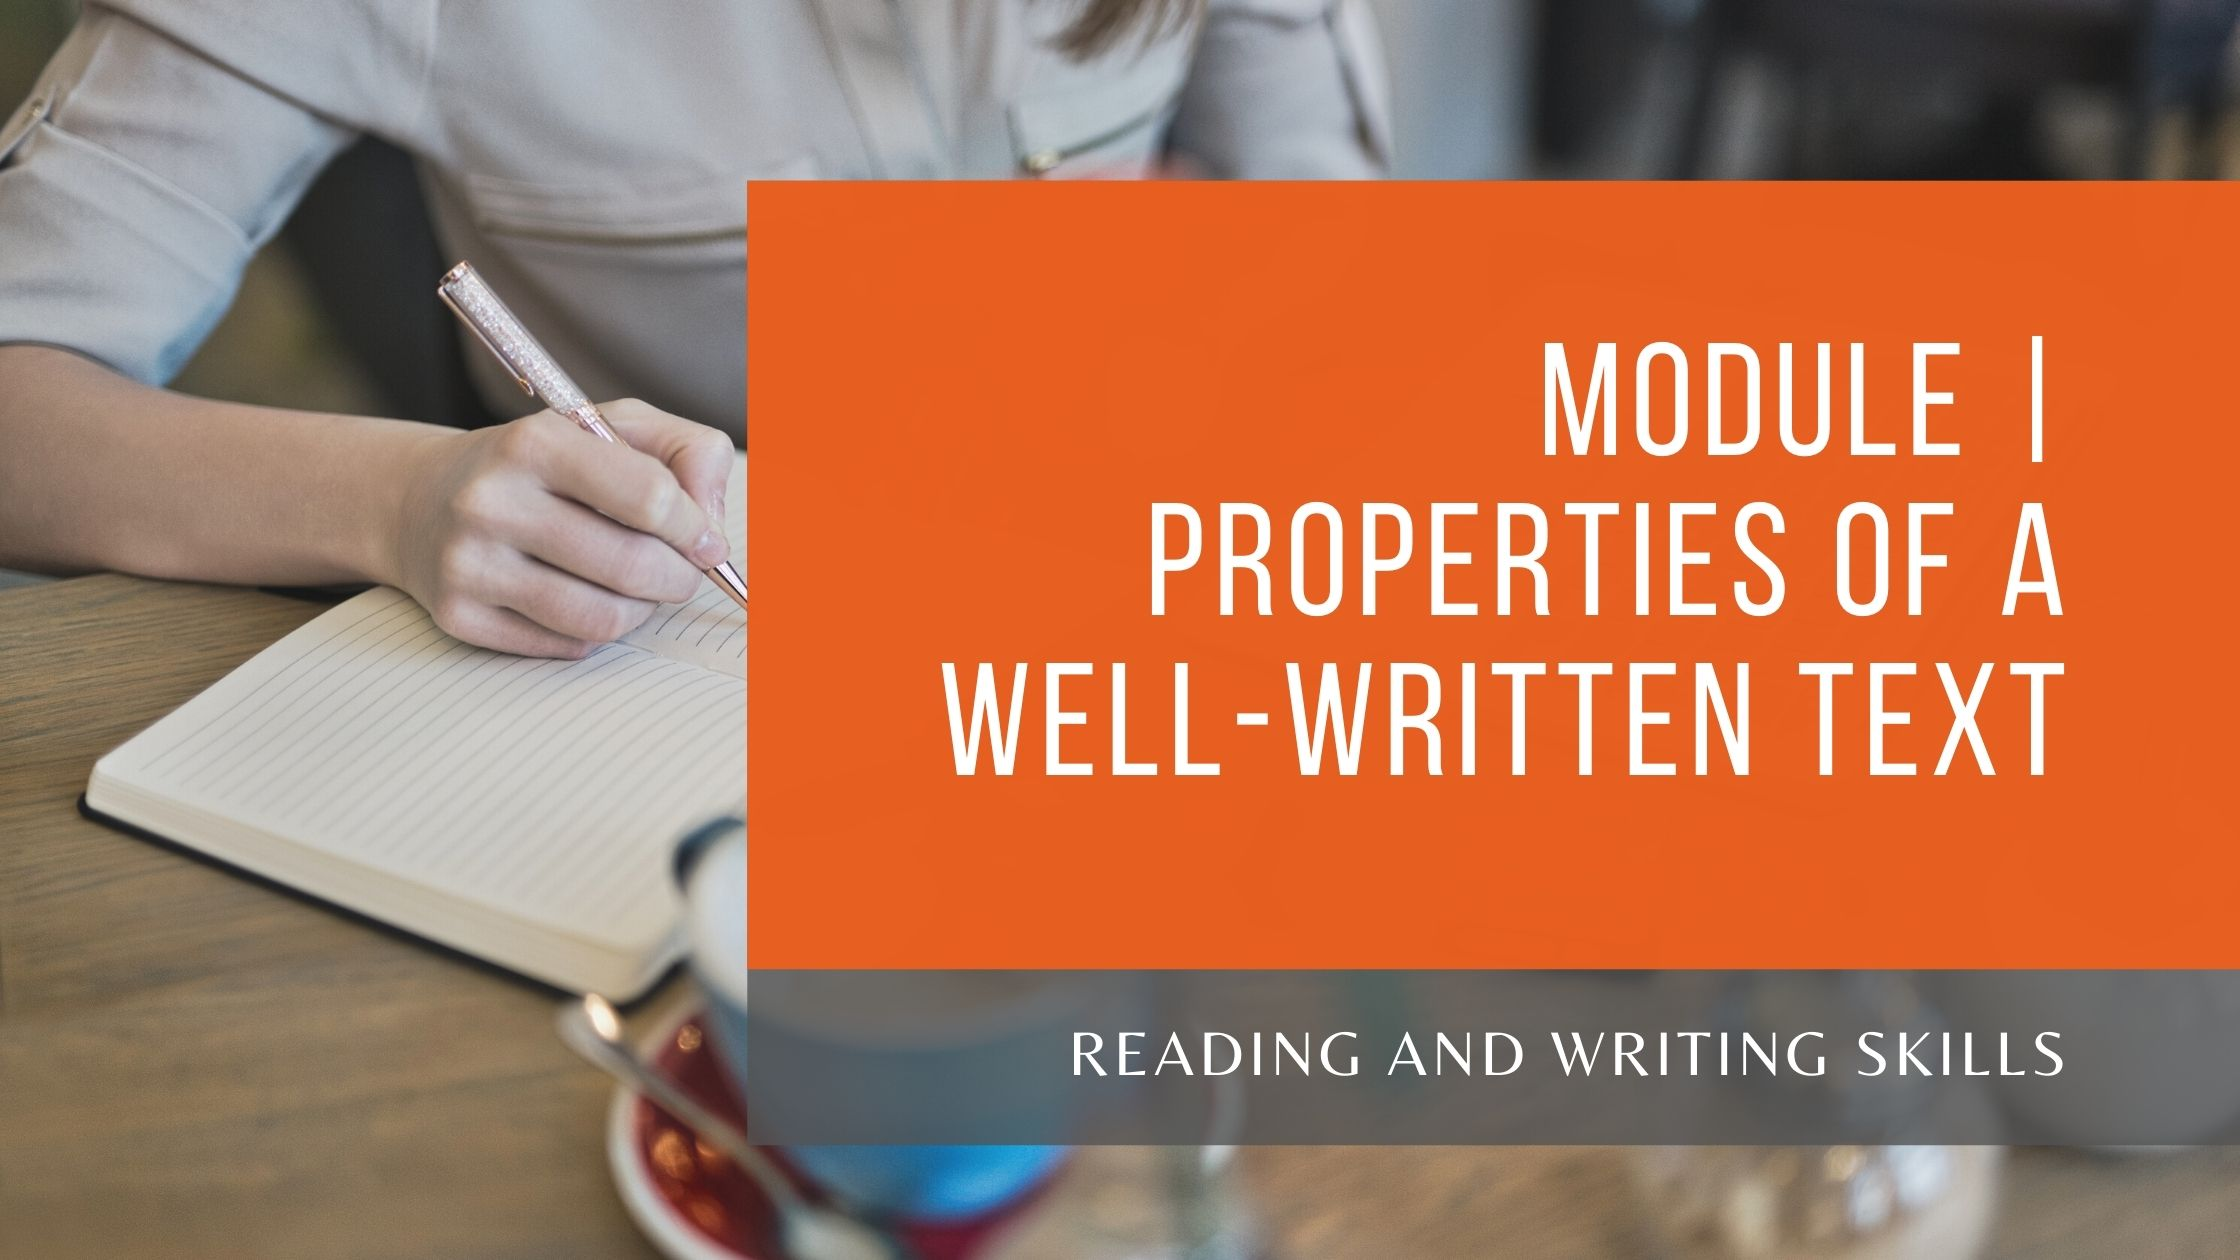 Module | Properties of a Well-written Text